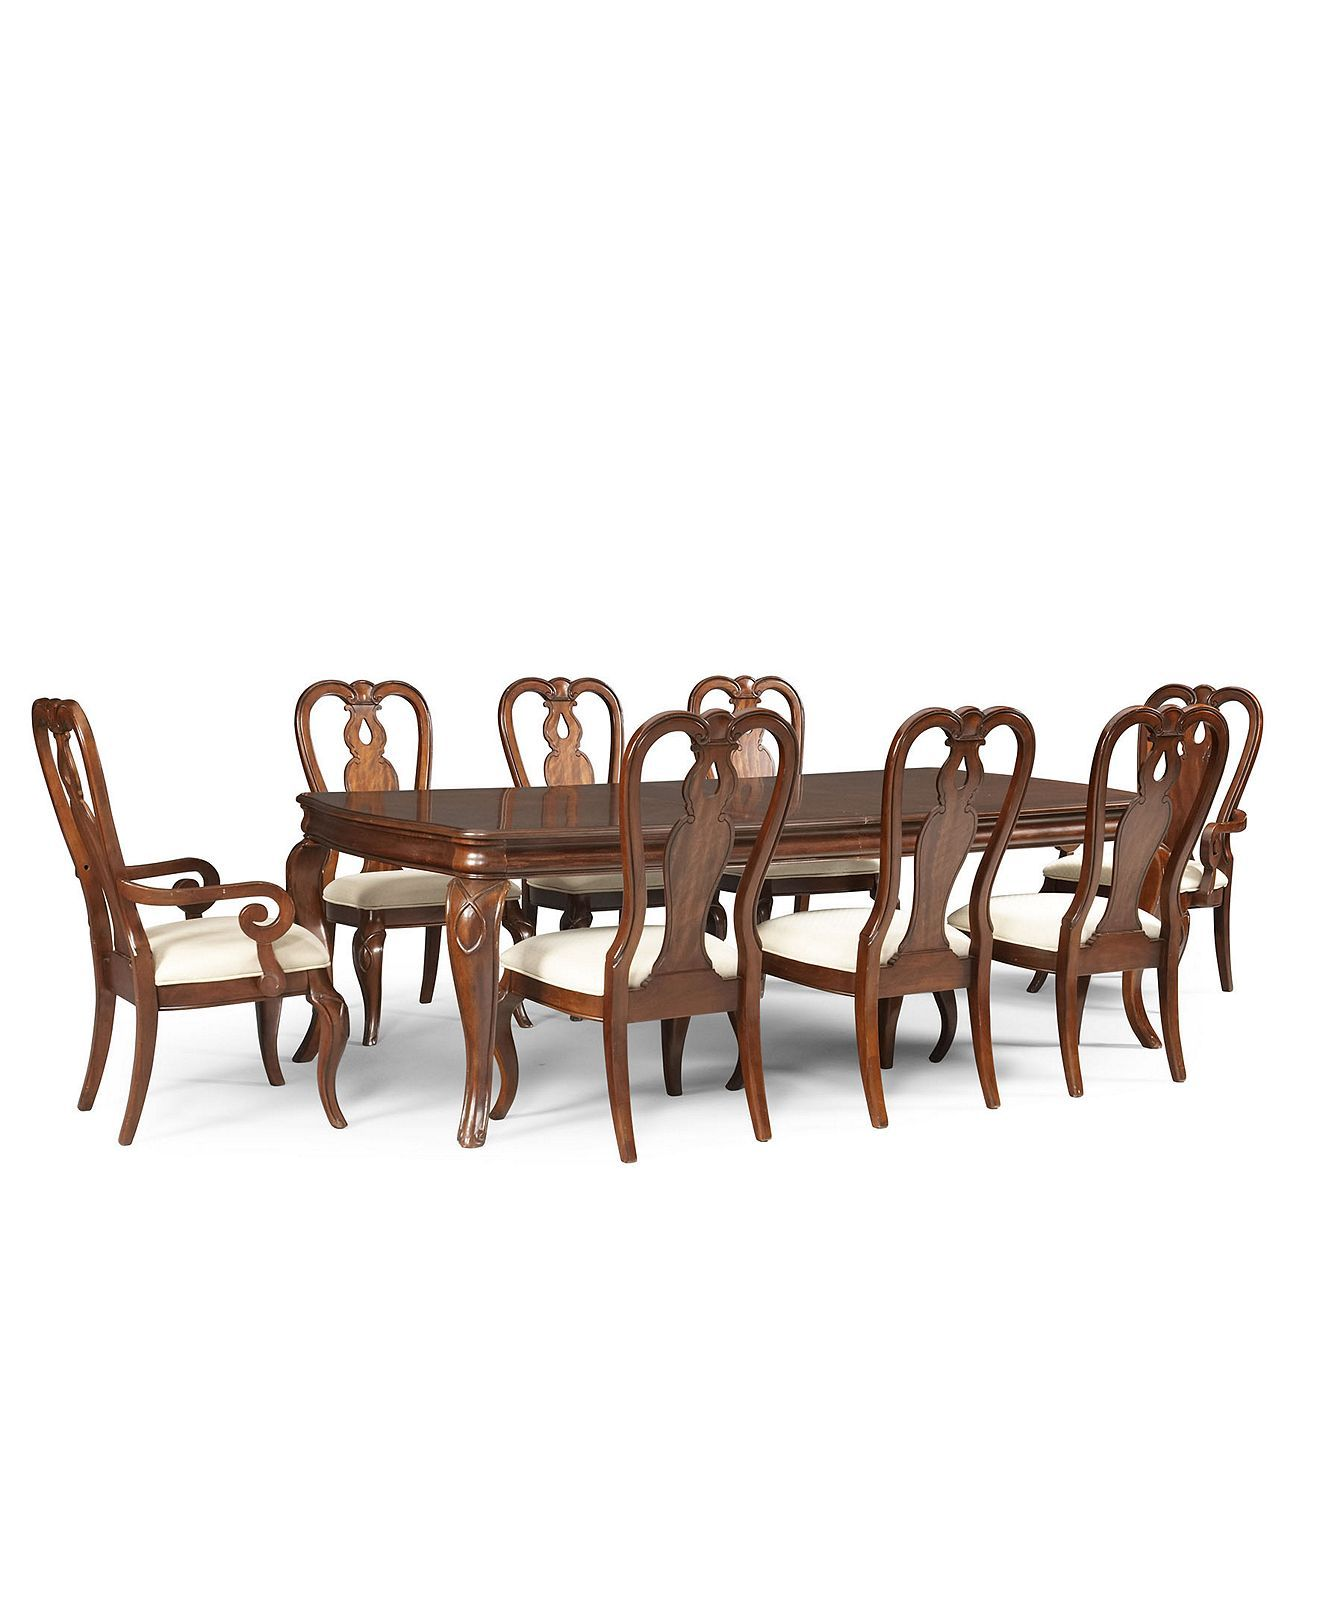 Bordeaux Louis Philippe Style 9 Piece Dining Set Rectangular Table 6 Side Dining Room Furniture Sets Dining Room Furniture Dining Room Furniture Collections